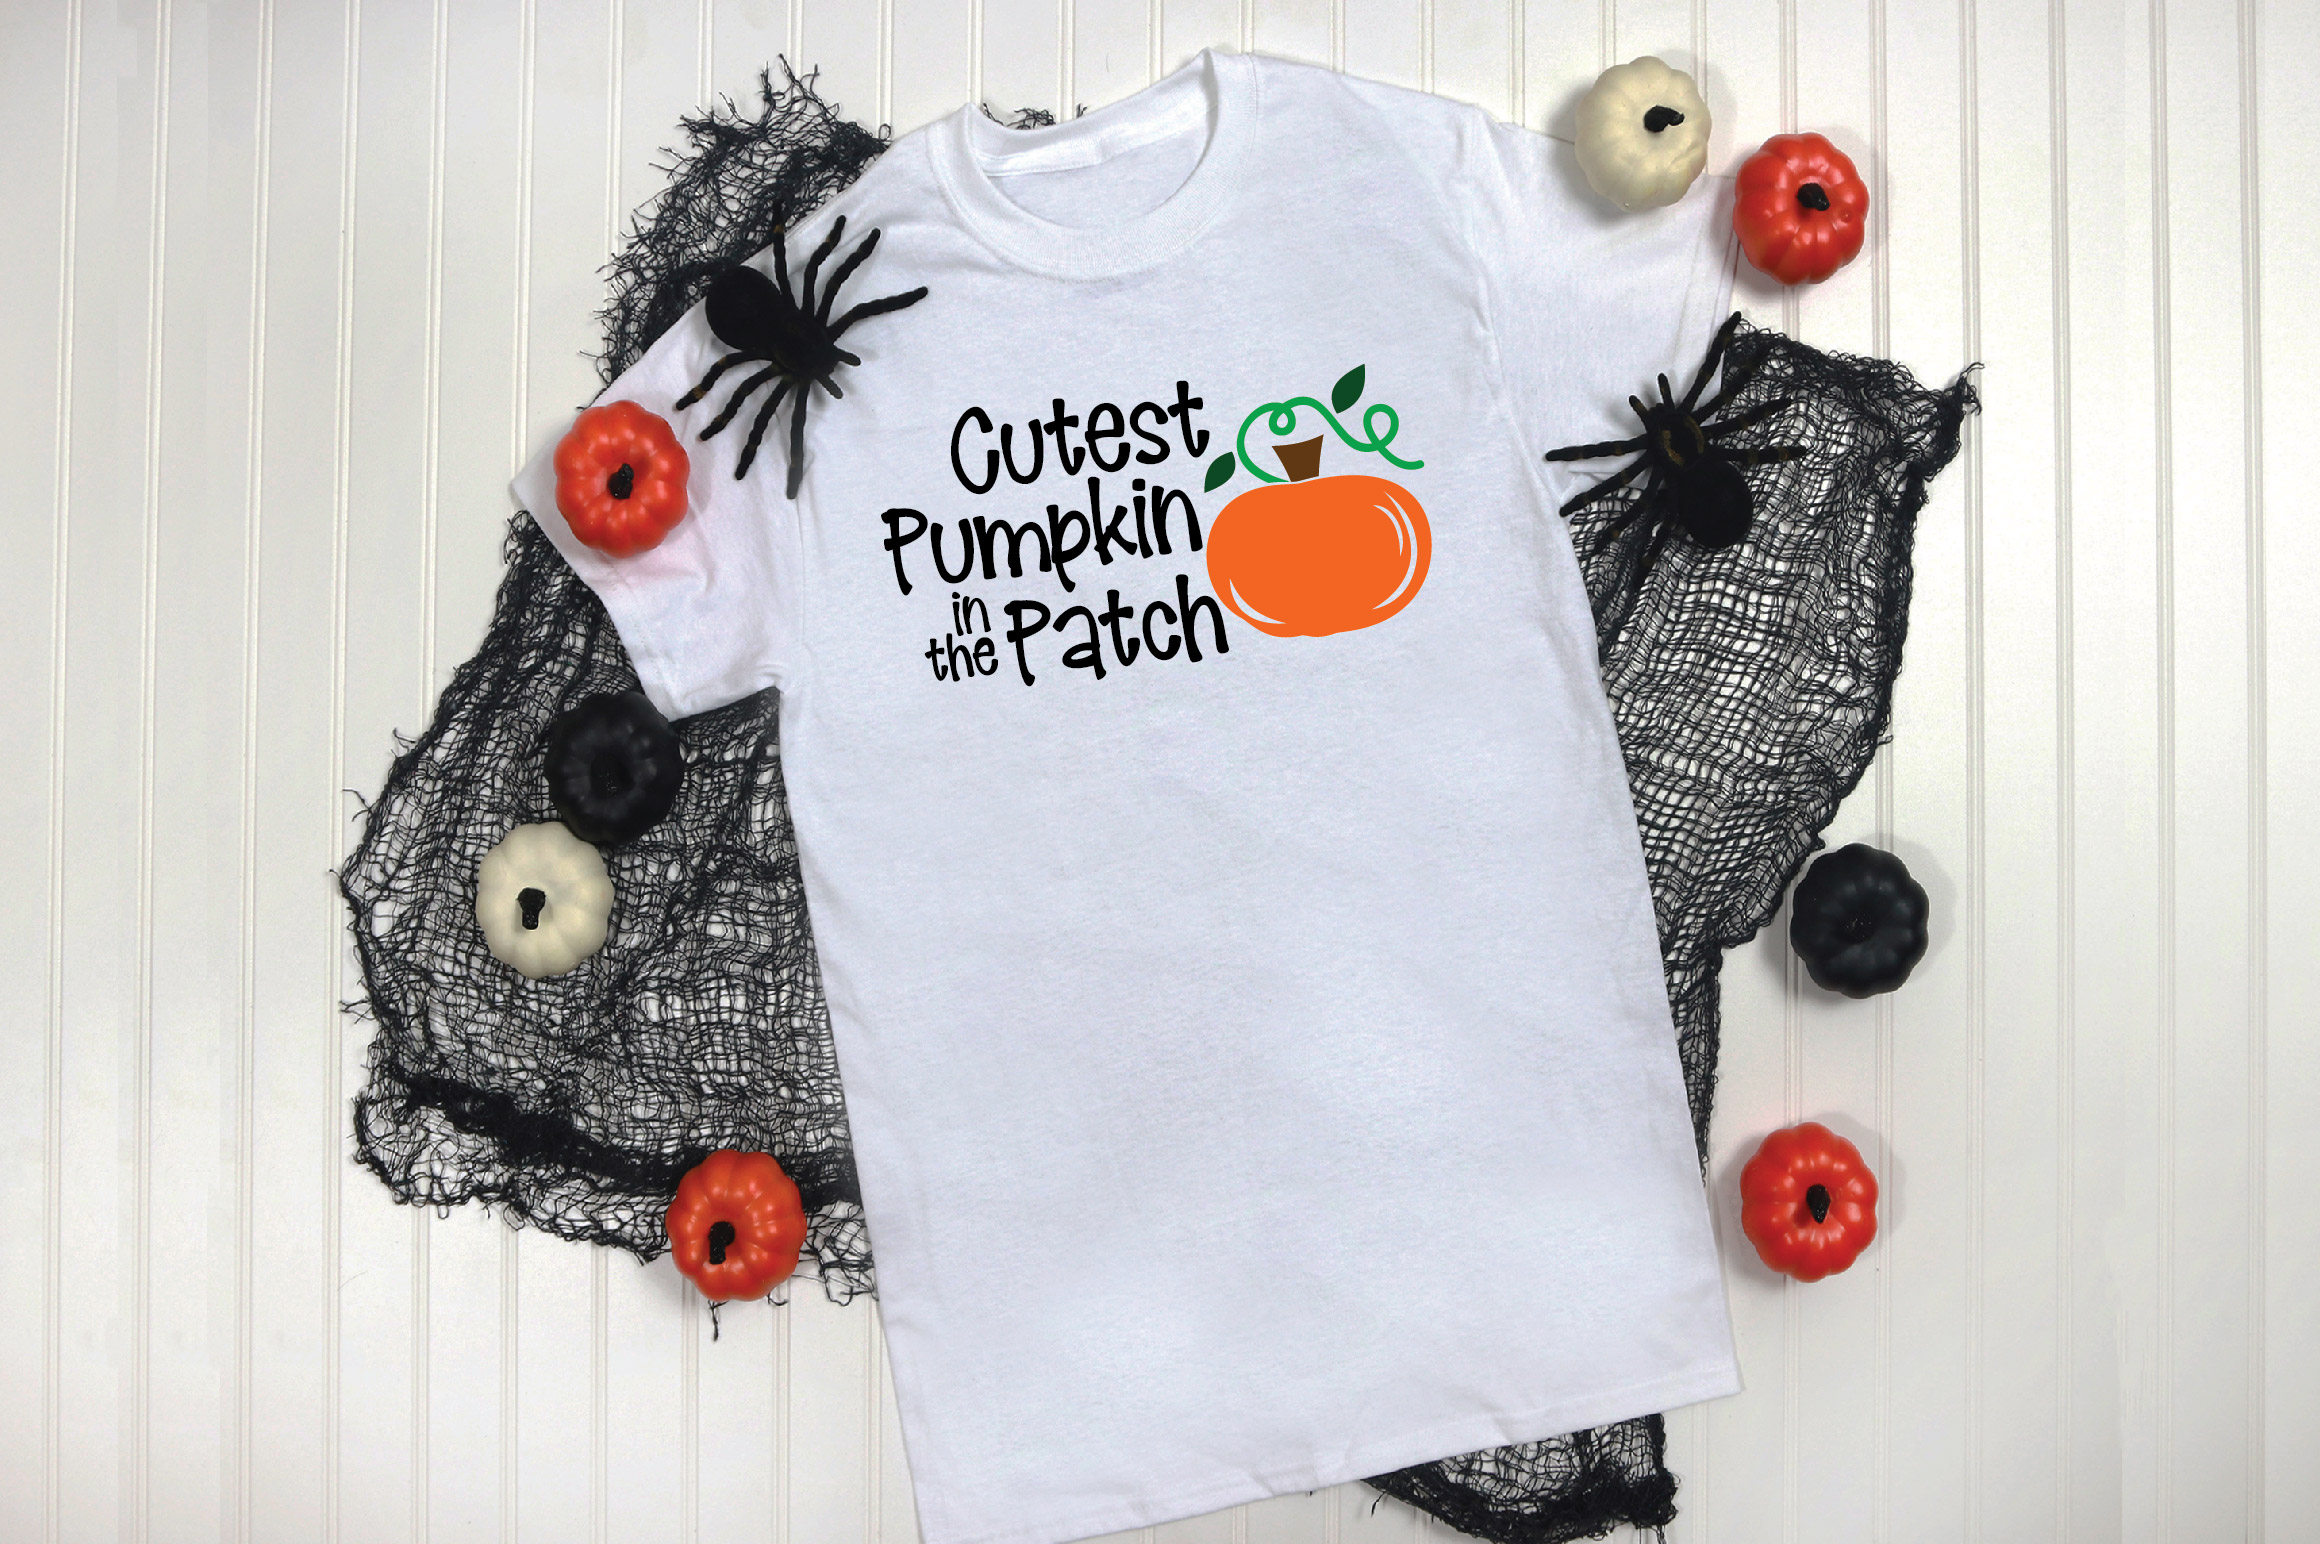 Cutest Pumpkin in the Patch SVG Cut File - Fall Pumpkin SVG example image 4